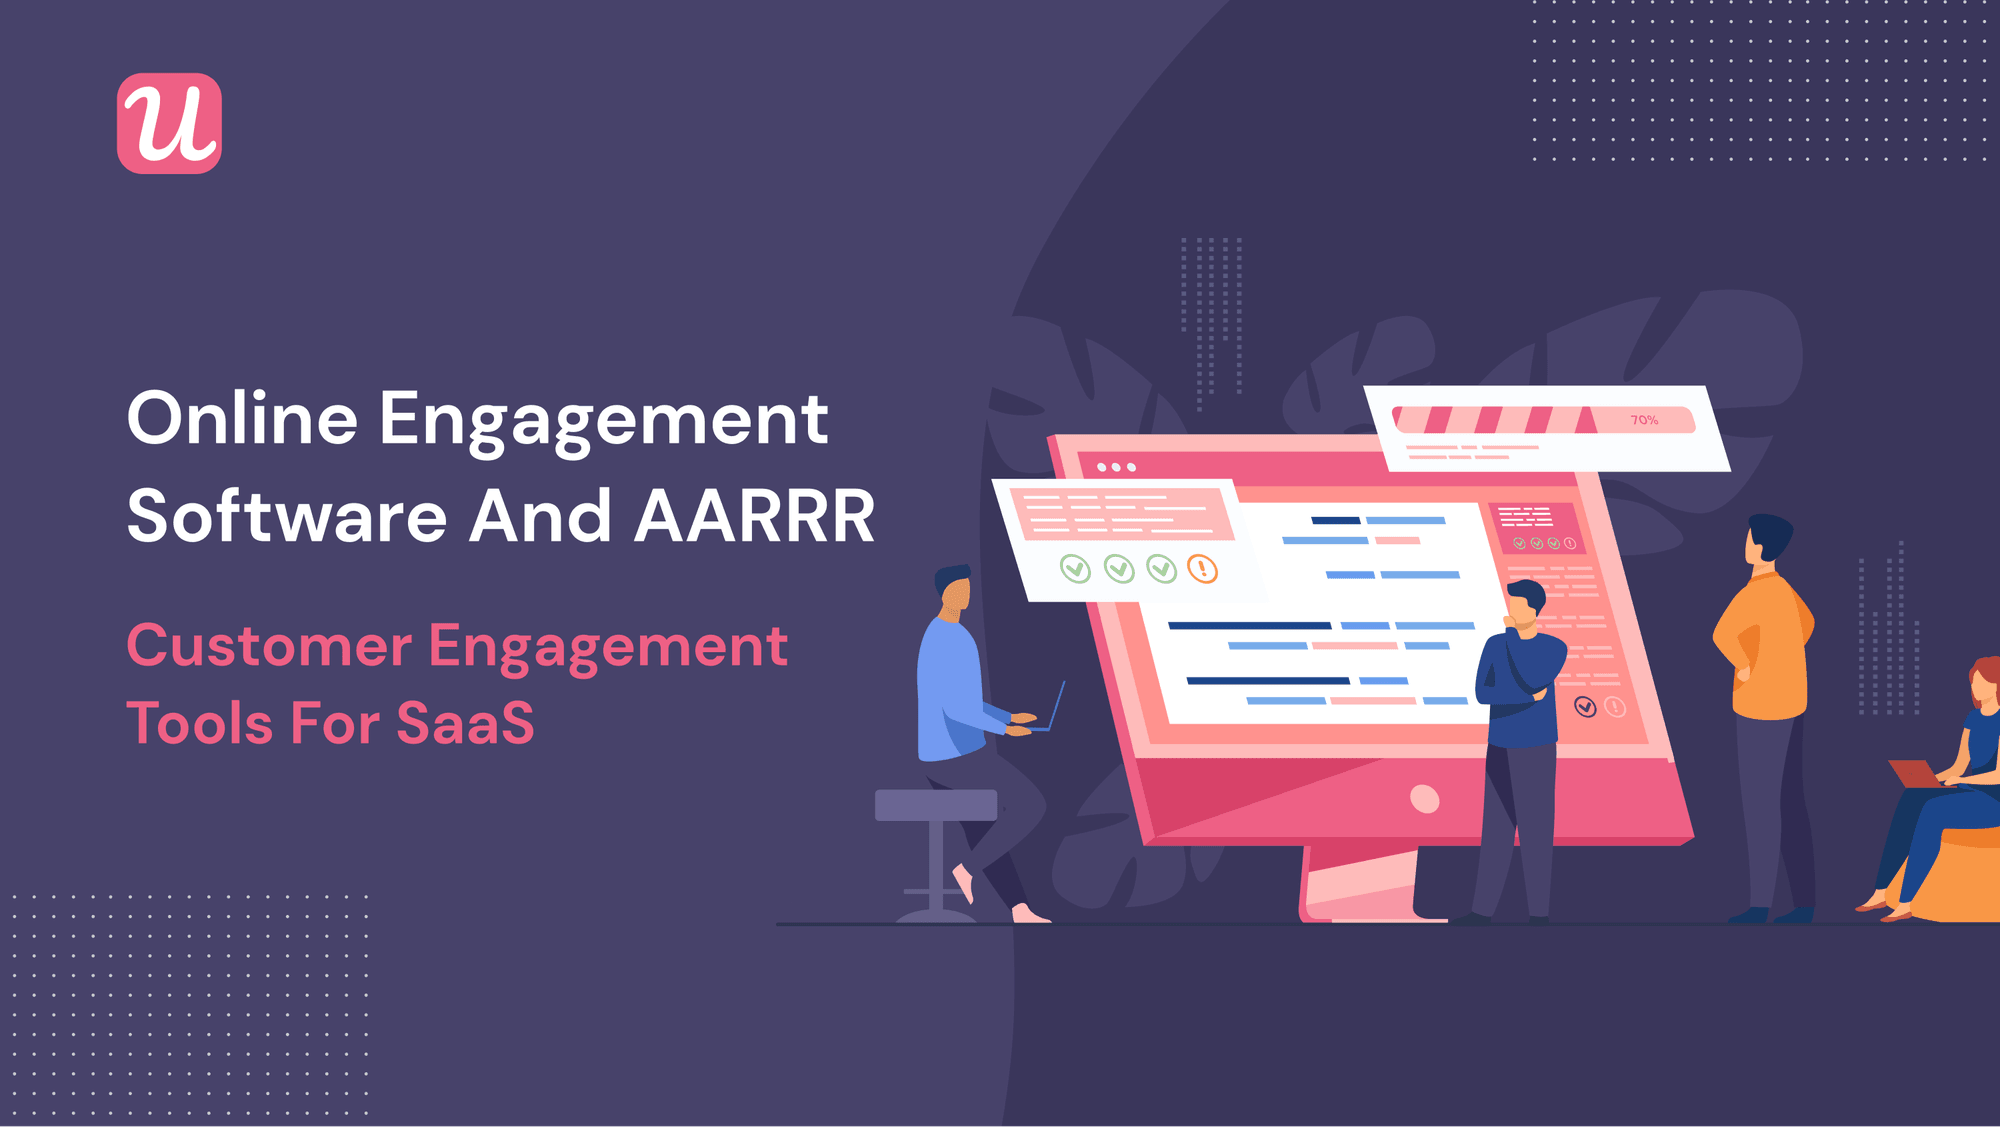 The Best Online Engagement Software for SaaS in 2021